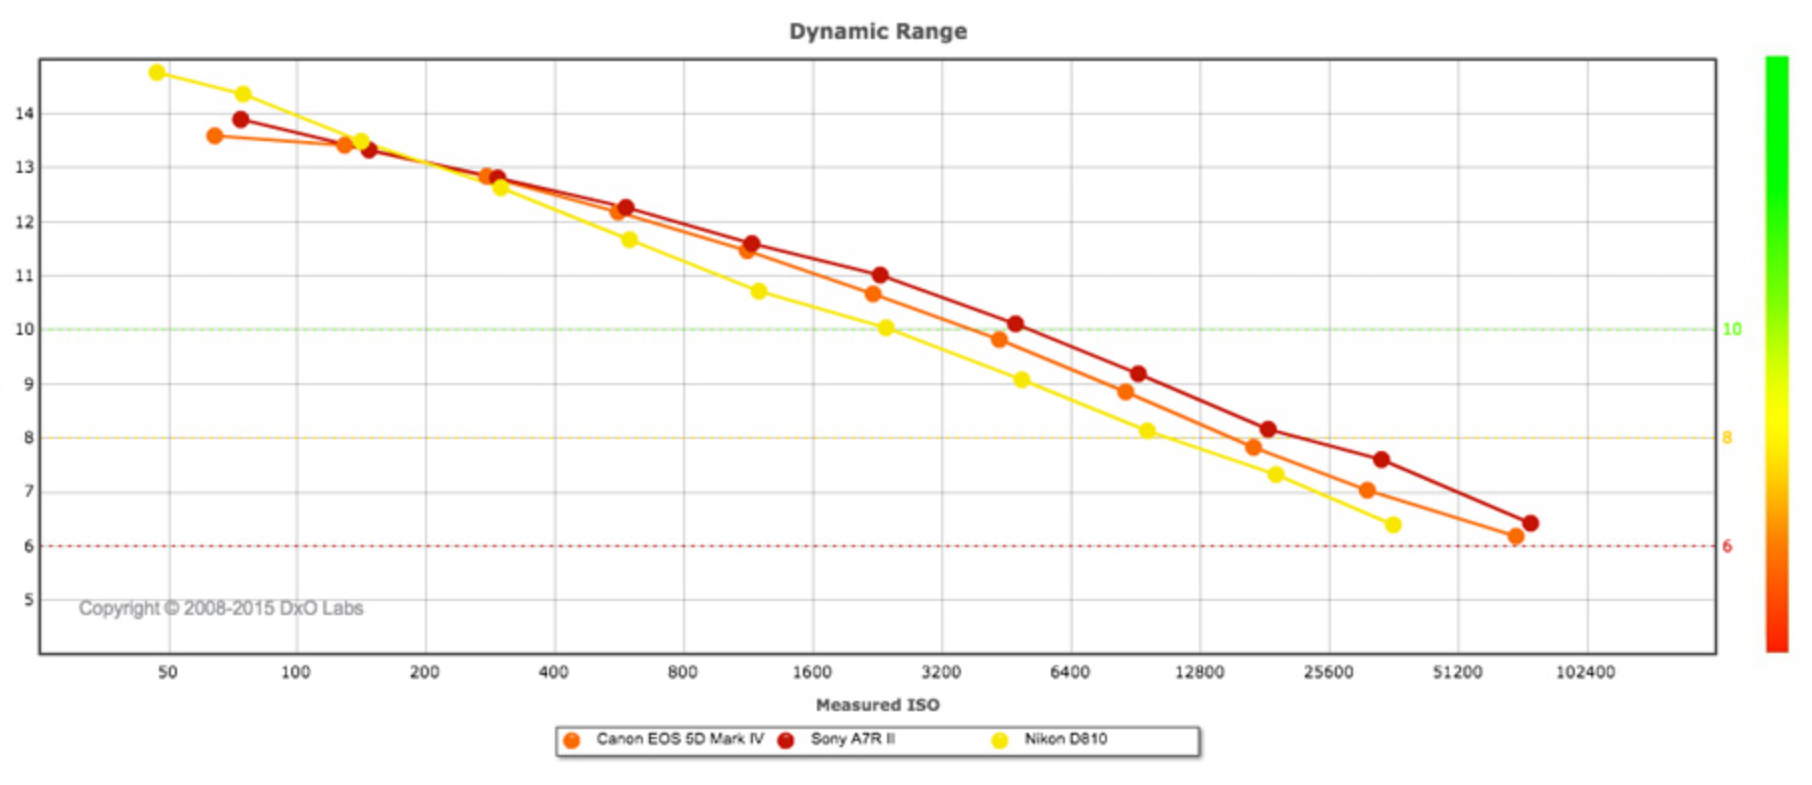 Dynamic Range and the New Canon 5D Mark IV